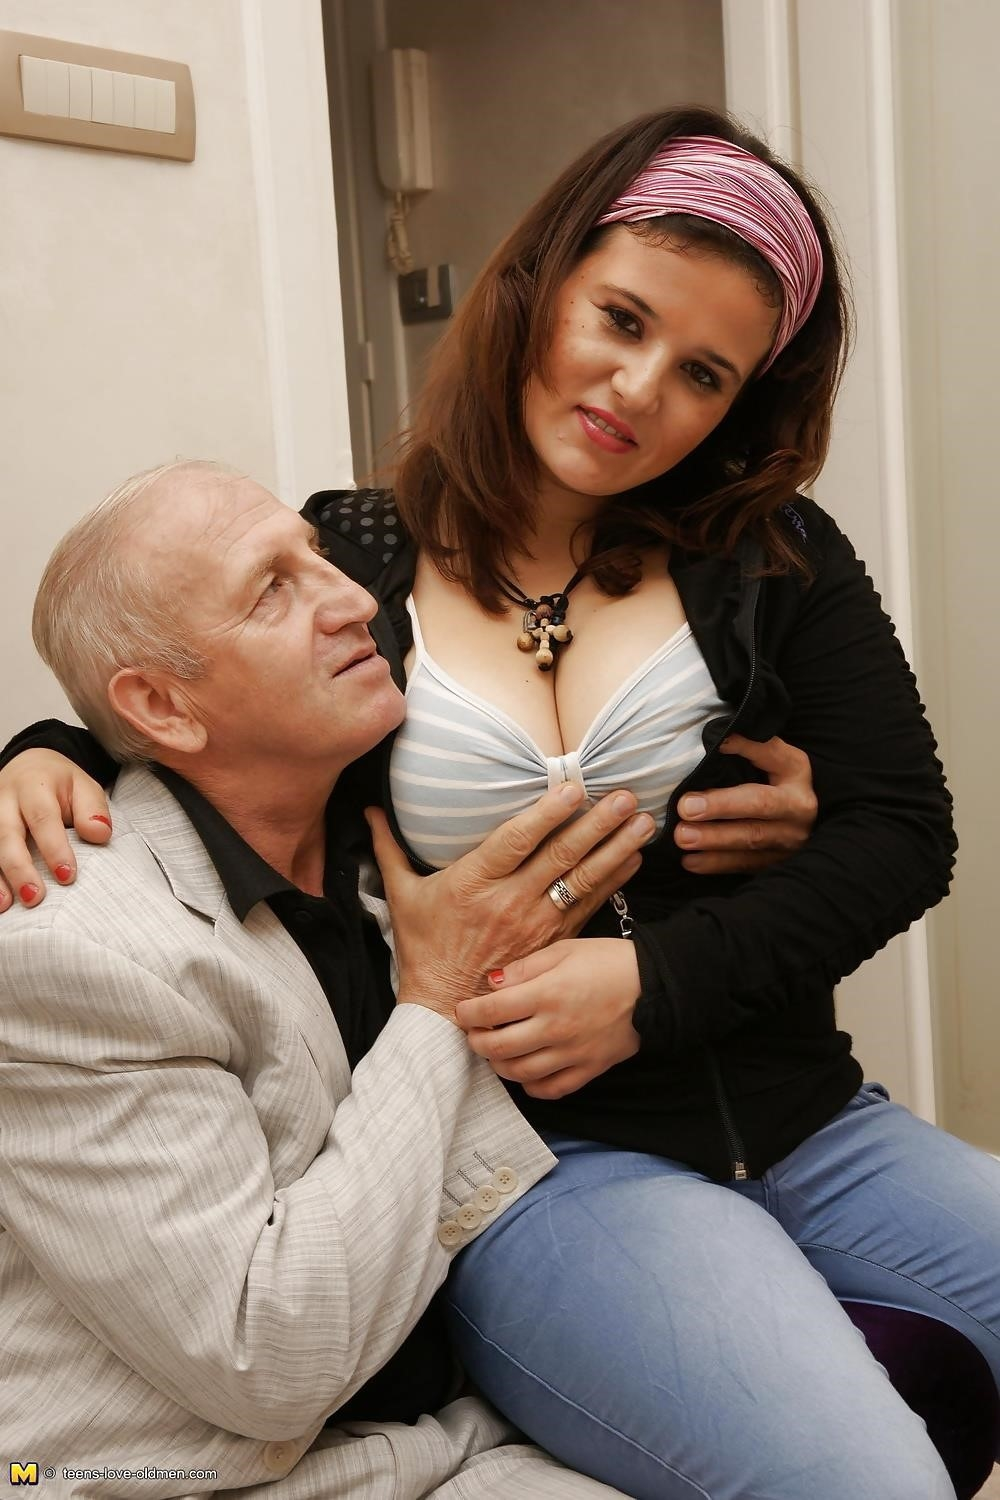 Porn girl and old man-2874